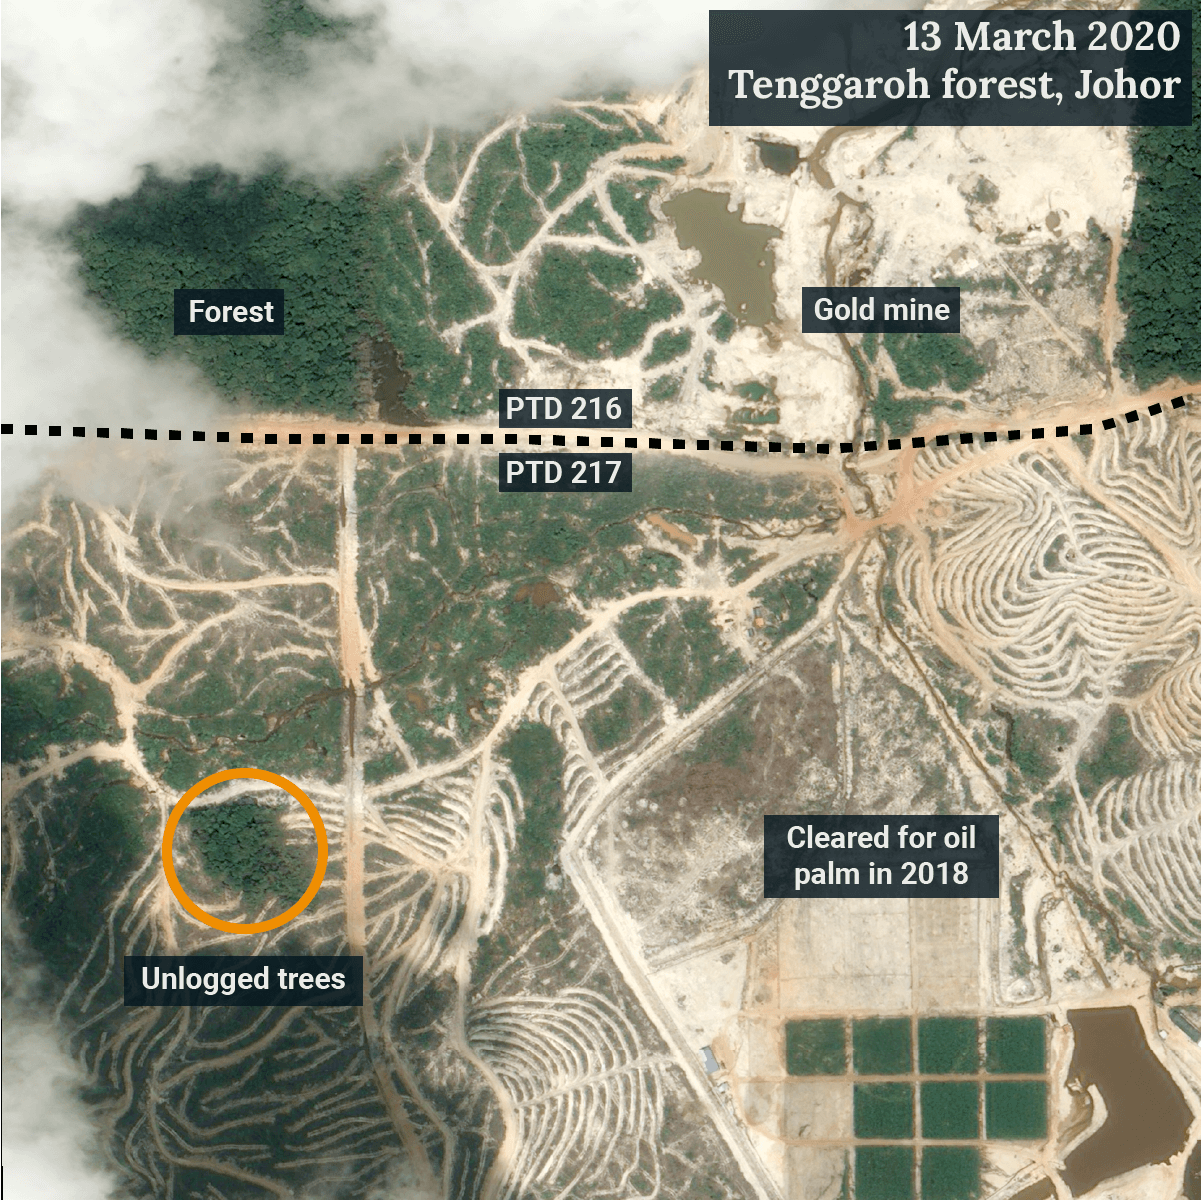 PTD 217 in the excised Tenggaroh forest reserve was cleared for oil palm in 2018. A cluster of trees was left unlogged. (Satellite image ©CNES 2020 Distribution Airbus DS / Earthrise)